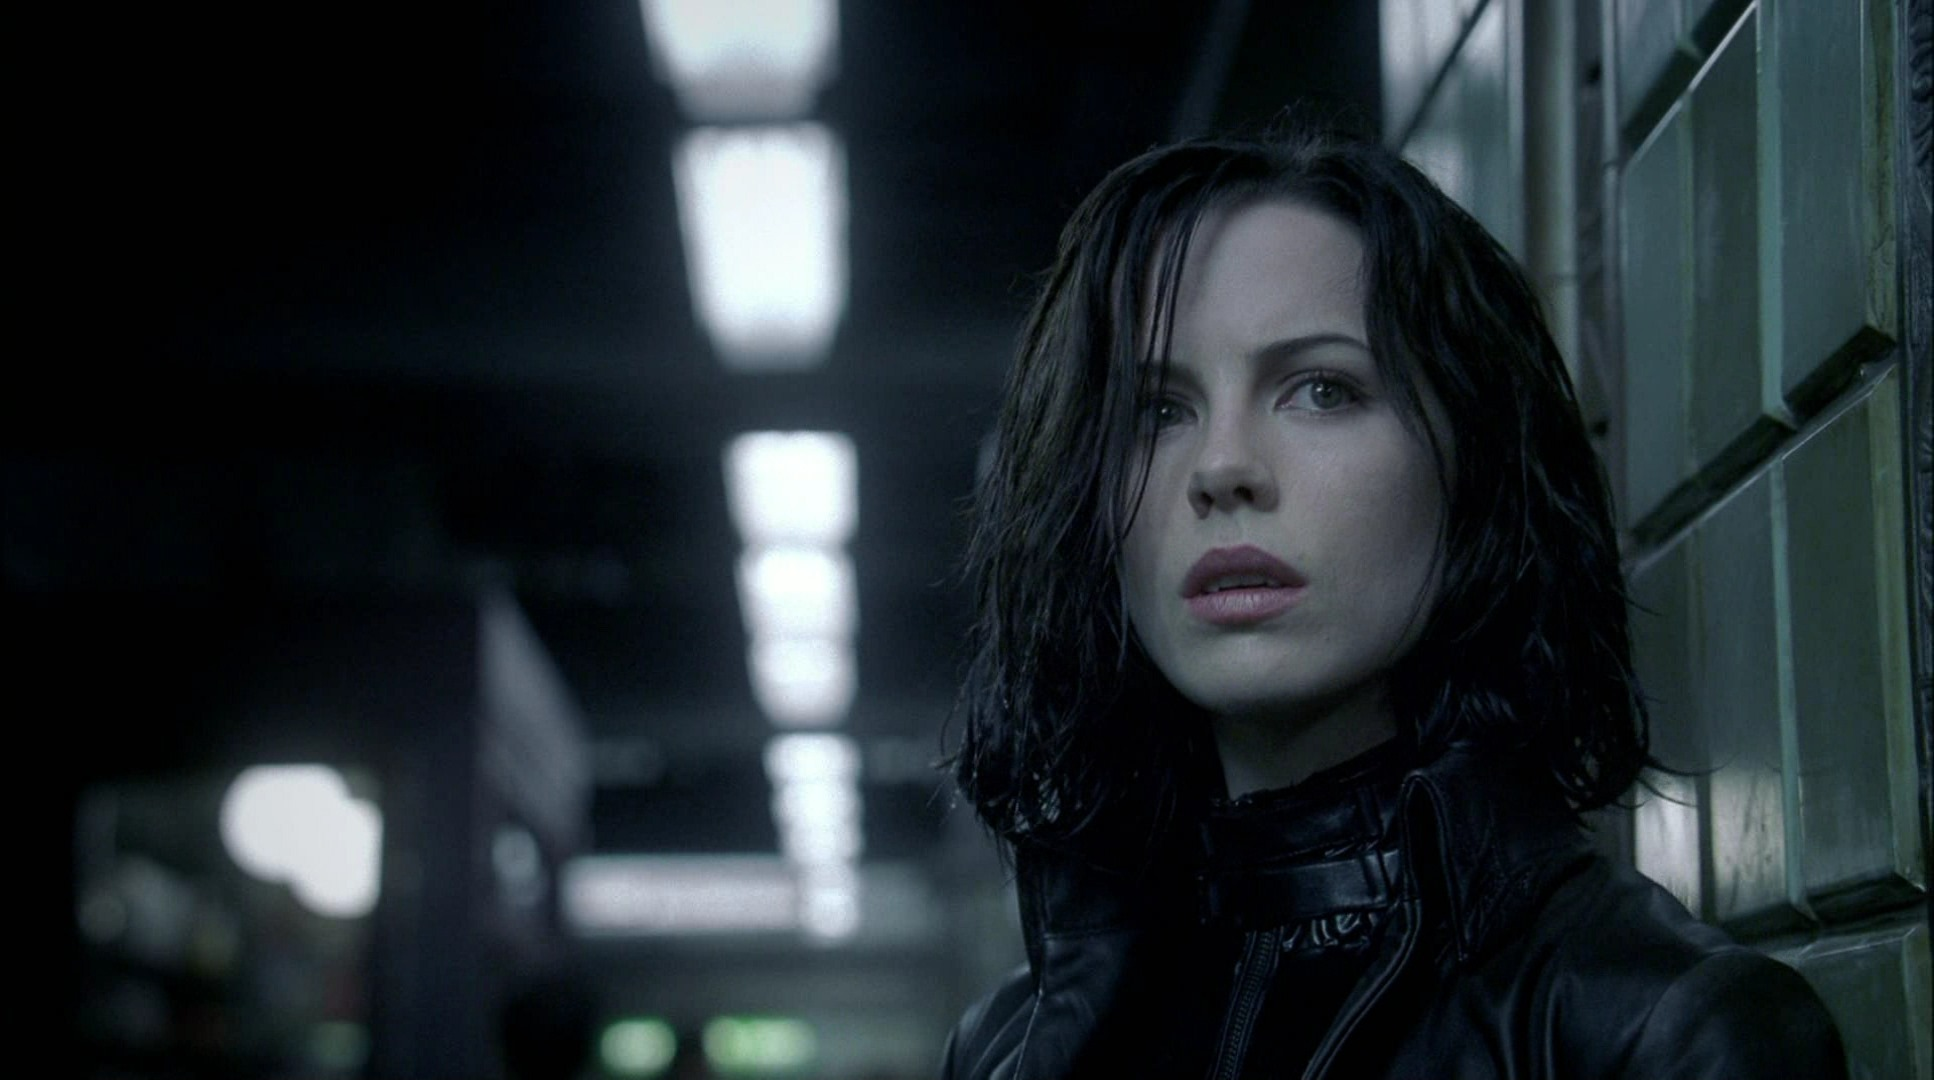 kate beckinsale underworld vs milla jovovich resident